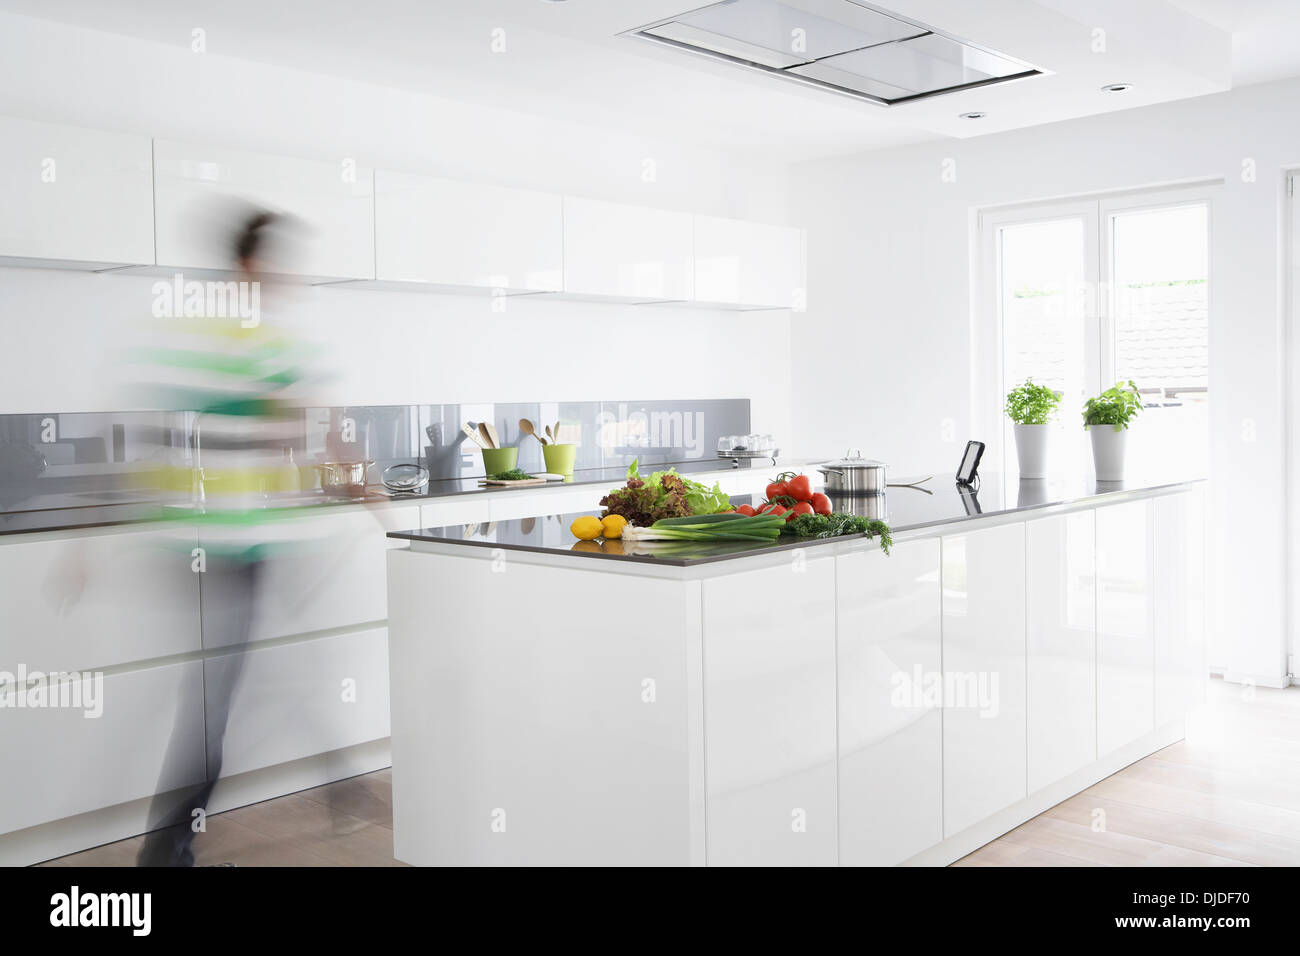 Germany, Cologne, Man in kitchen, blurred motion - Stock Image